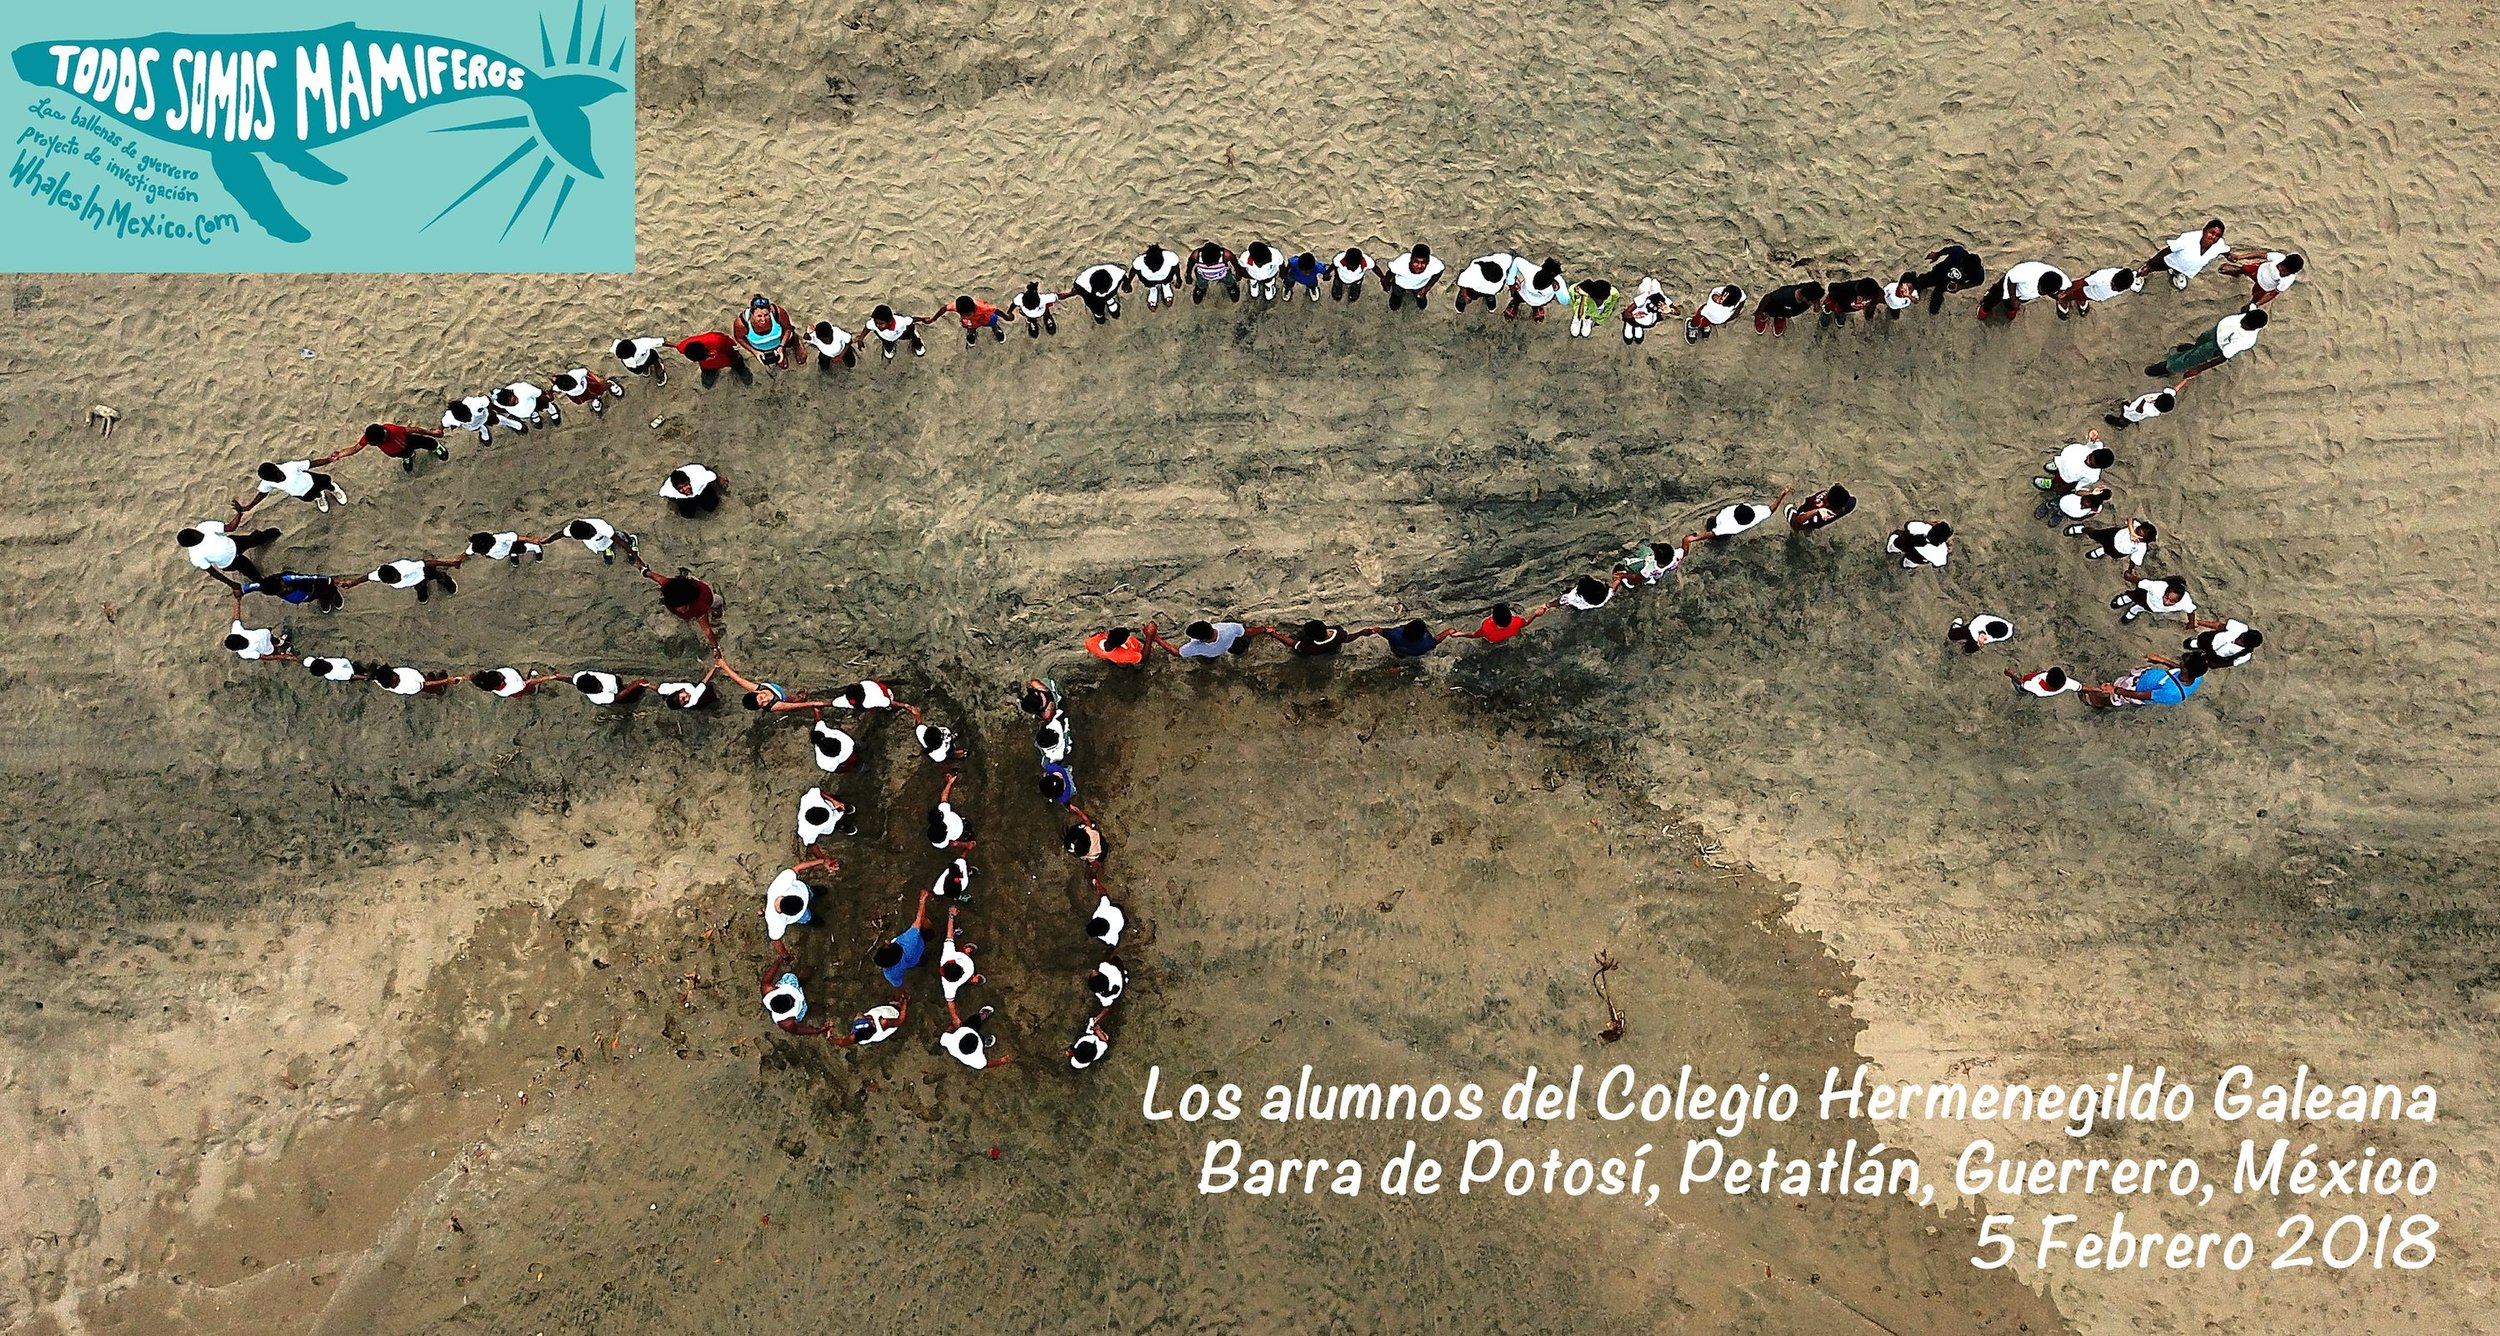 Students form the shape of a humpback whale on a beach in Barra de Potosí